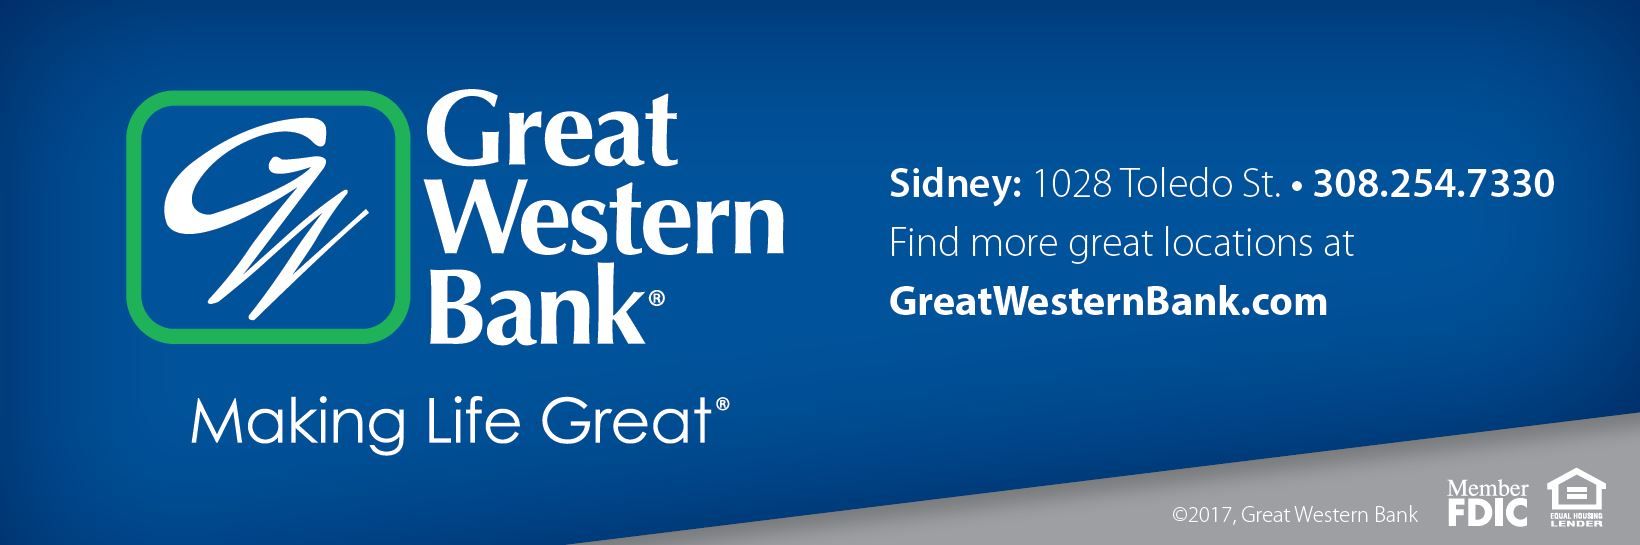 Great-Western-Bank--horizontal---2.JPG